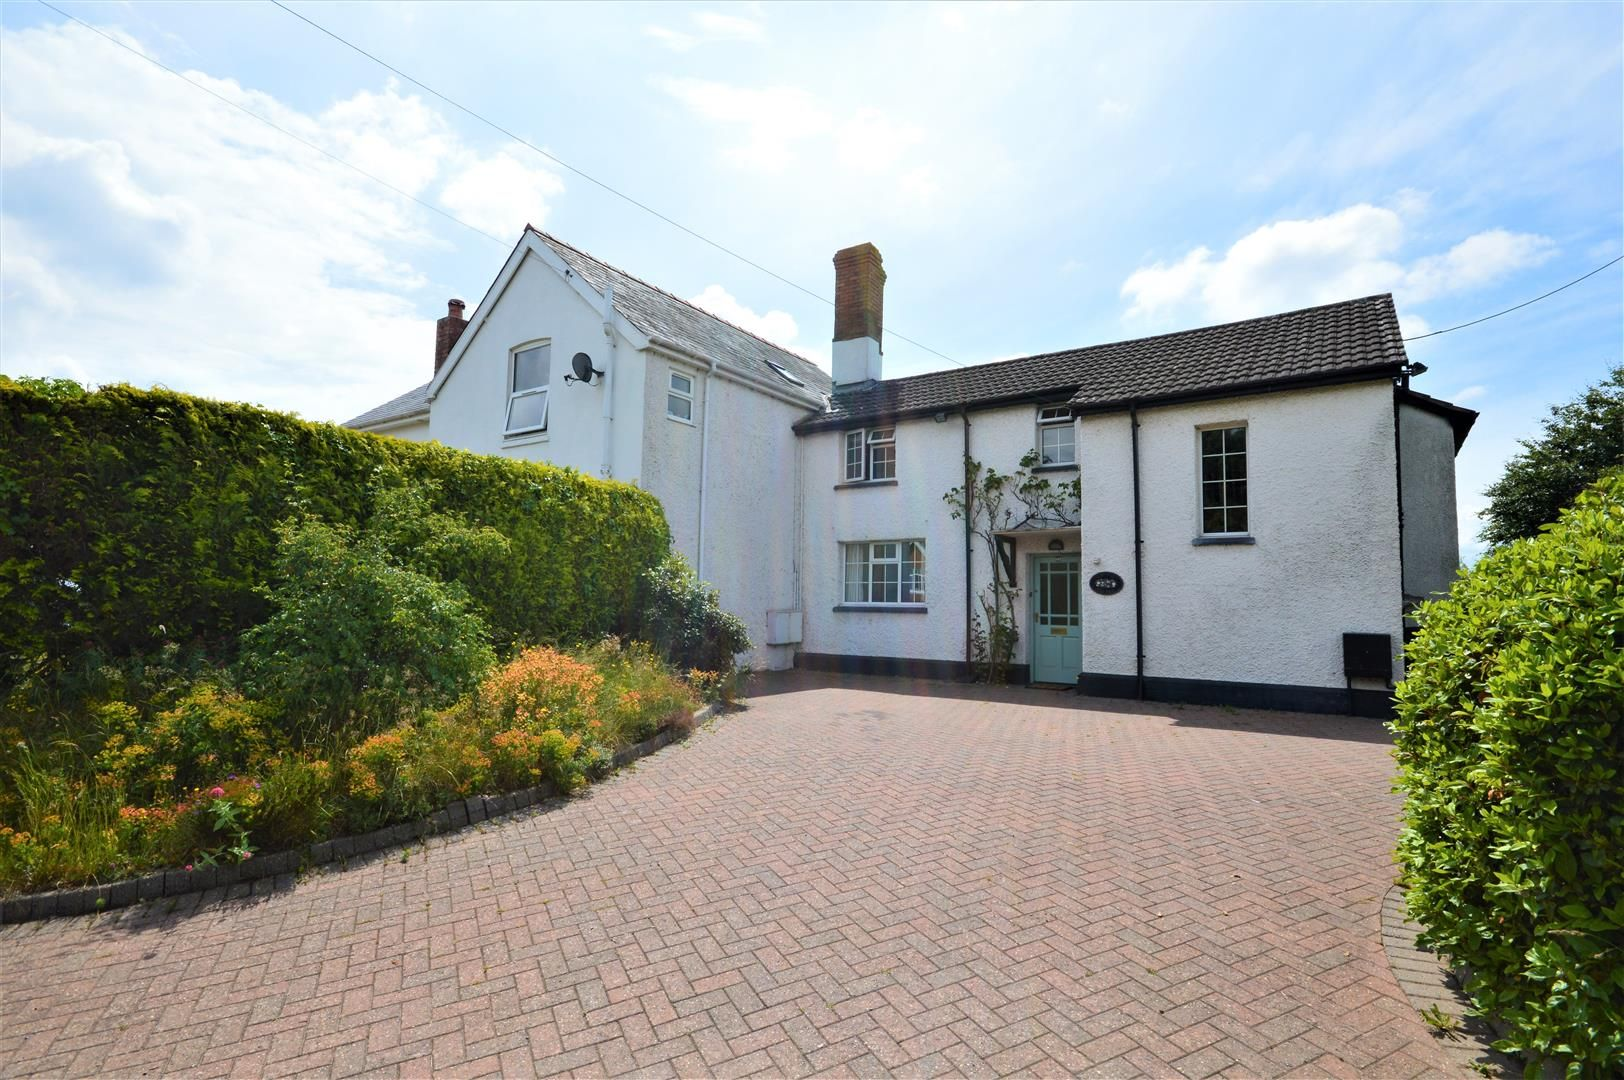 3 bed semi-detached for sale in Burghill, HR4